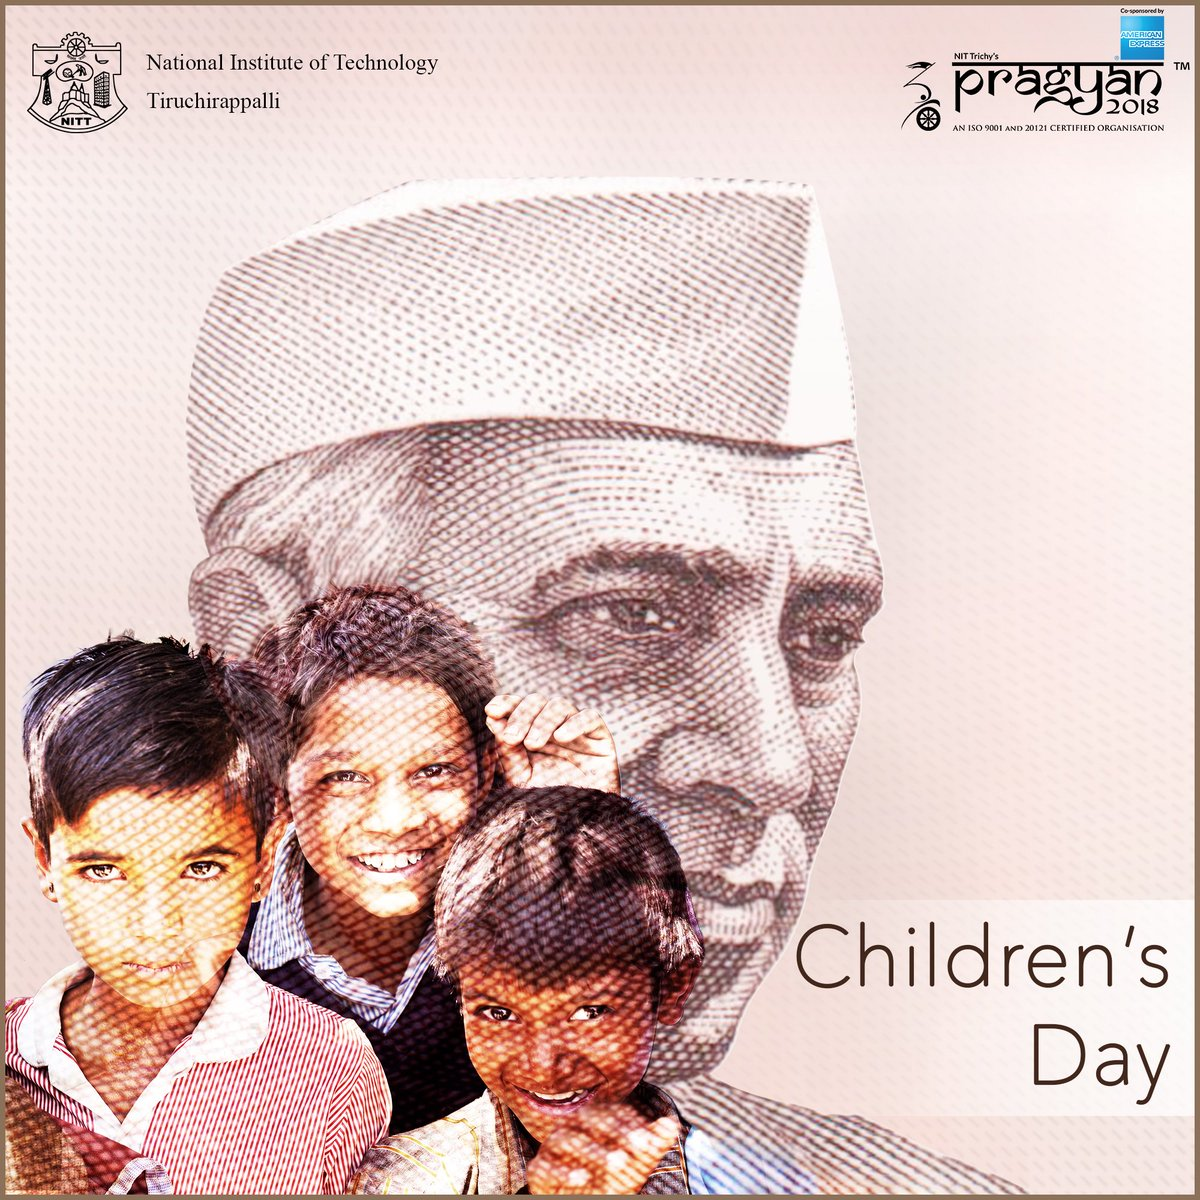 #Pragyan celebrates #ChildrensDay by saluting that sharp child-like curiosity that can change the world. #LetsCelebrateTechnology<br>http://pic.twitter.com/ldnE0BFMgQ